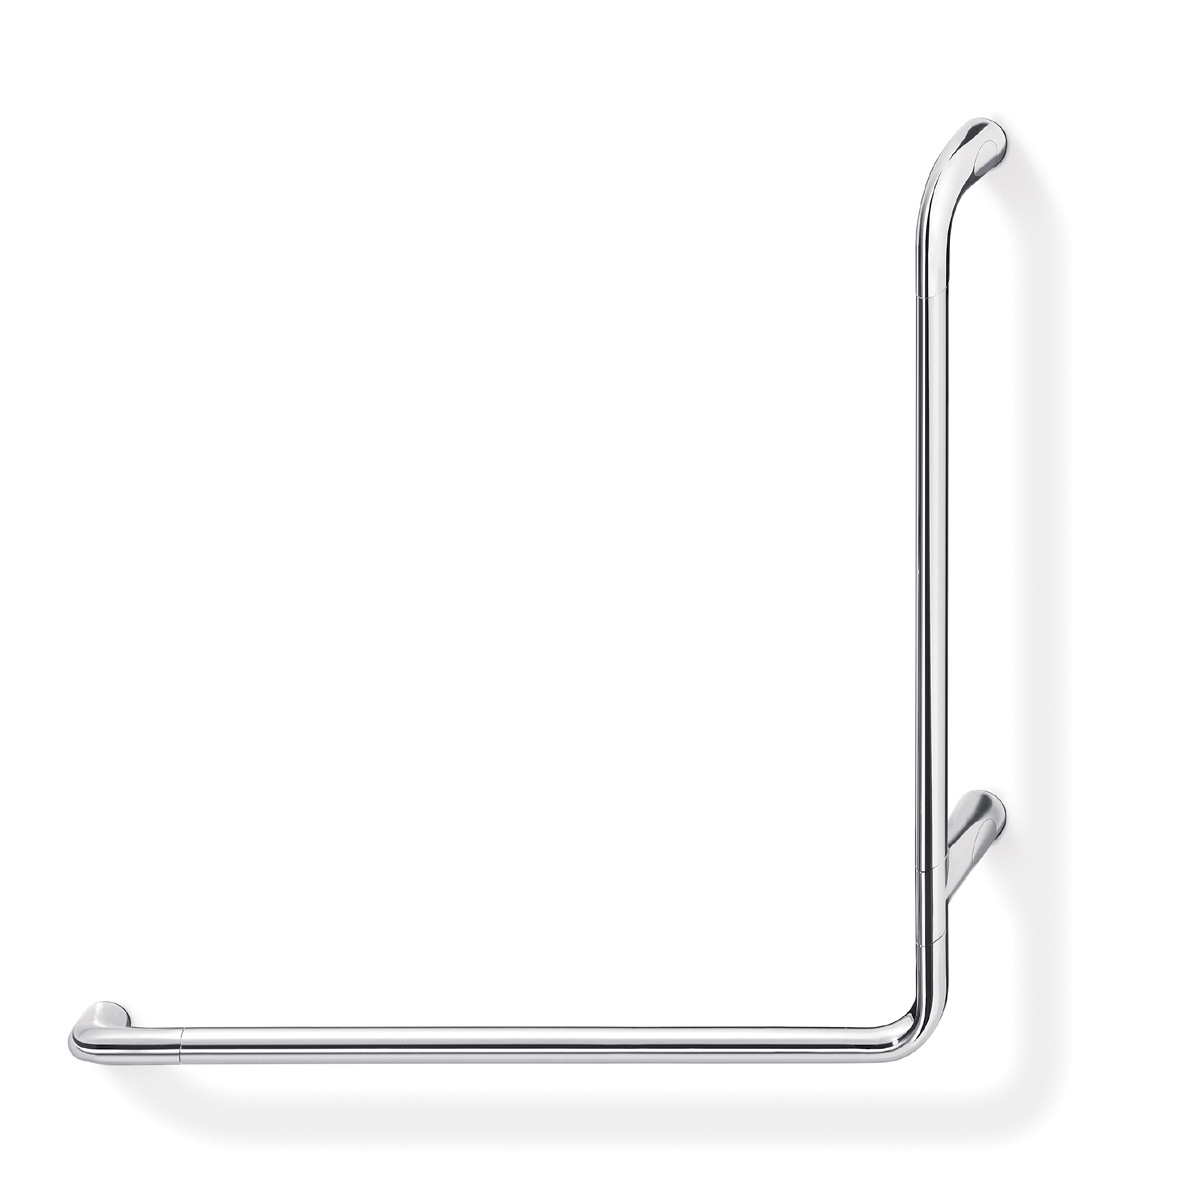 Confort L Shaped safety rail Right hand 67 x 67cm